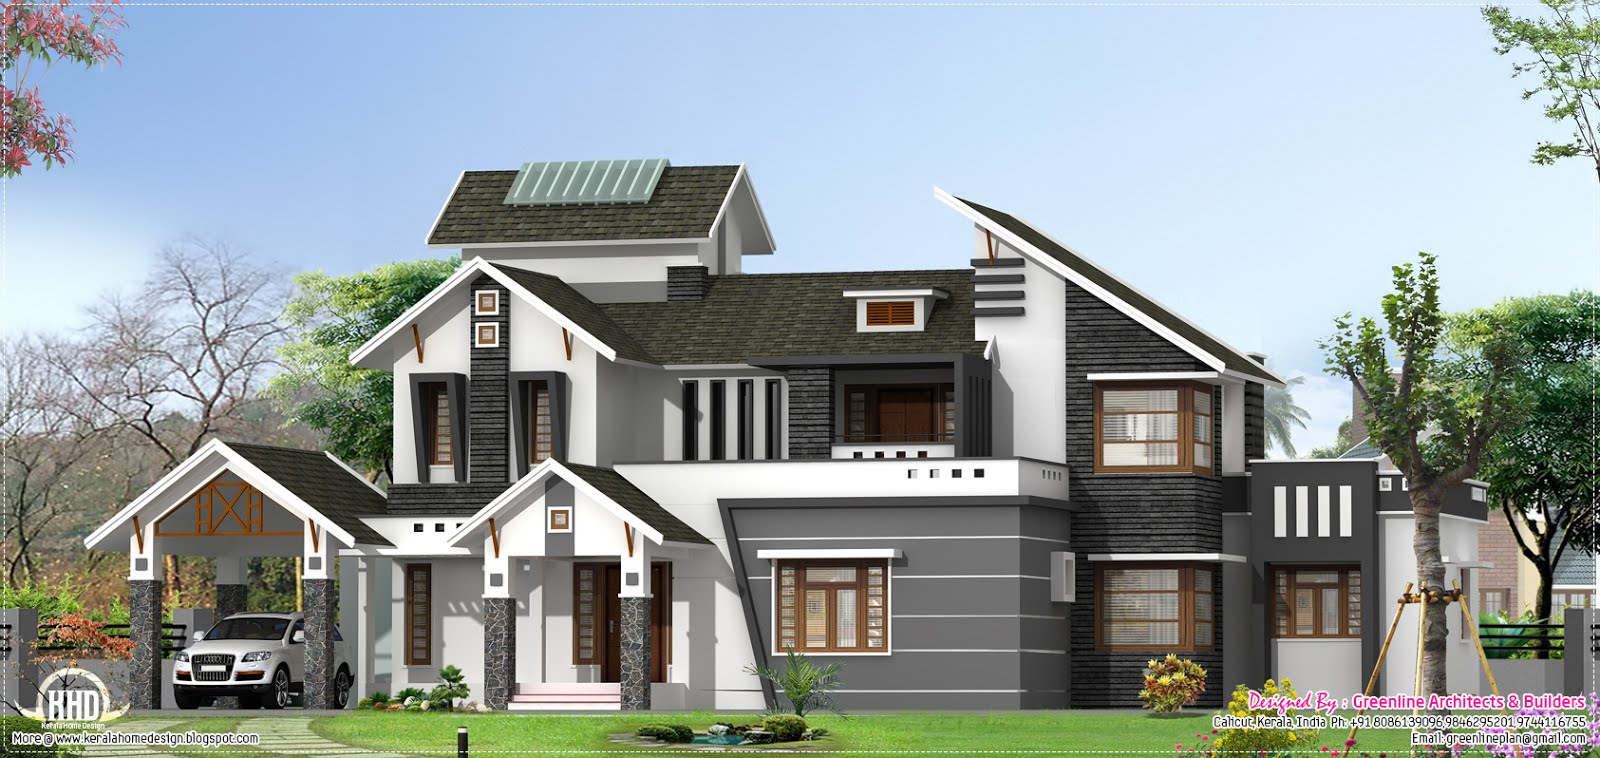 Modern 5 bedroom home design kerala home design and for House design images